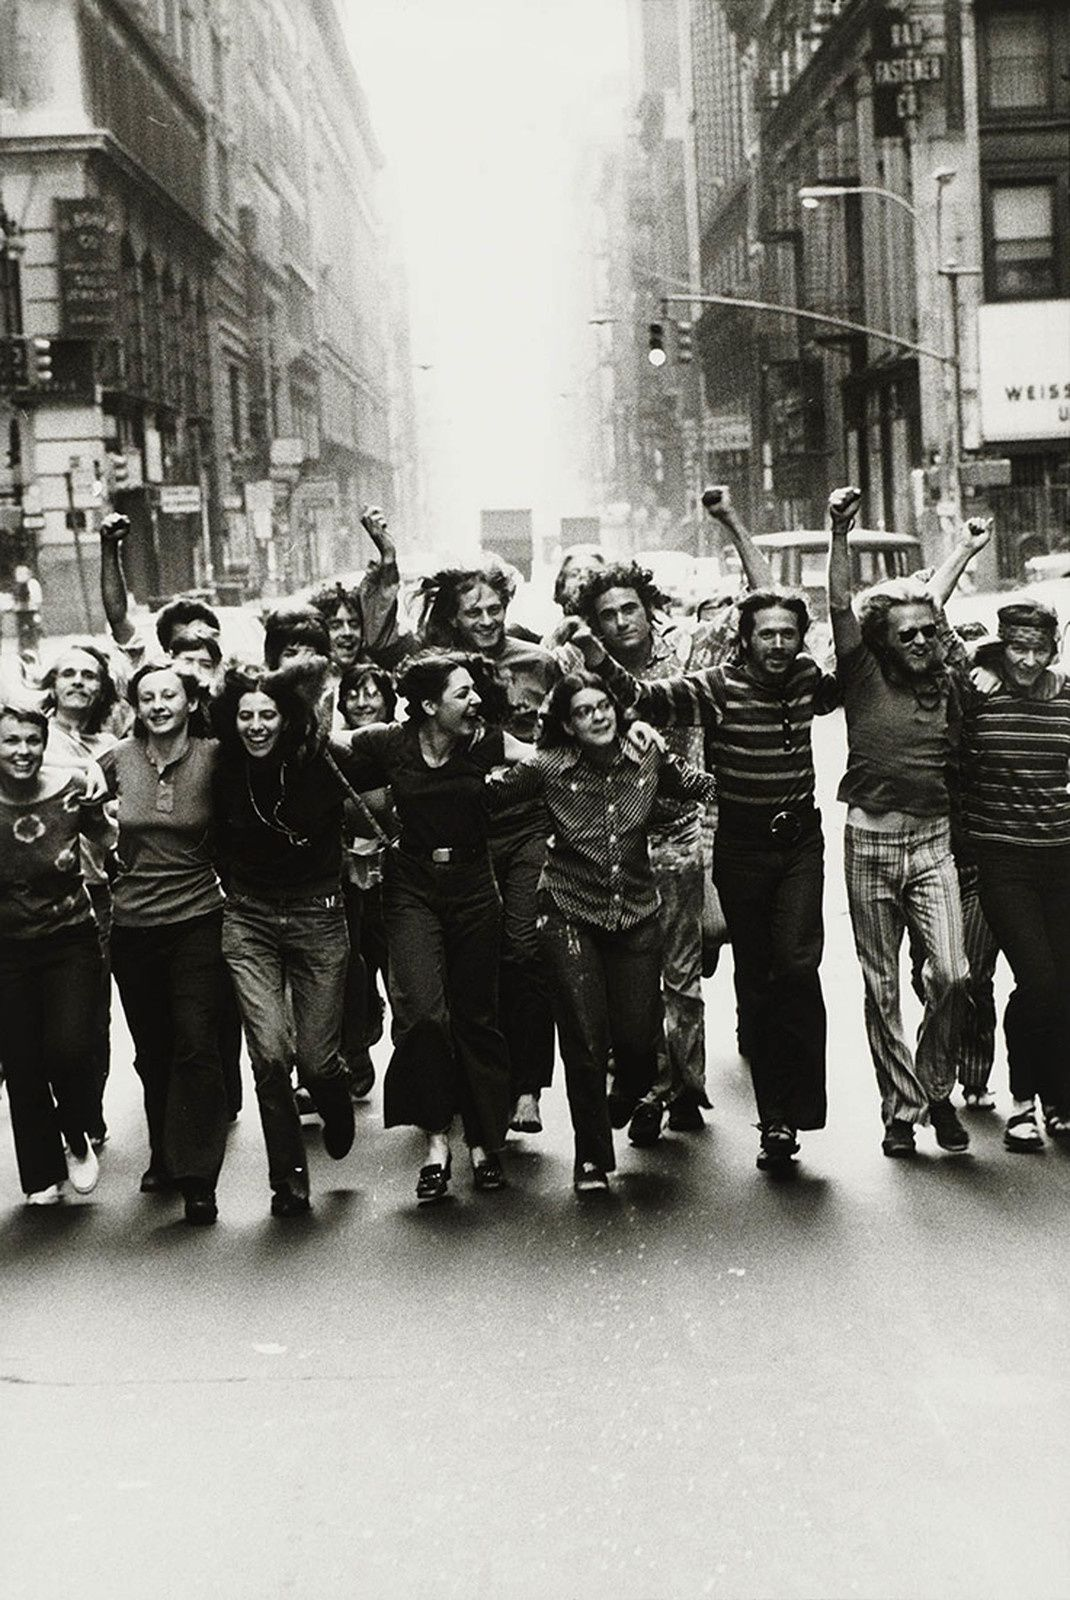 Gay Liberation Front Poster Image 1970 Peter Hujar Tirage gélatino-argentique, The Morgan Library & Museum, achat en 2013 grâce au Charina Endowment Fund © Peter Hujar Archive, LLC, courtesy Pace/MacGill Gallery, New York and Fraenkel Gallery, San Francisco